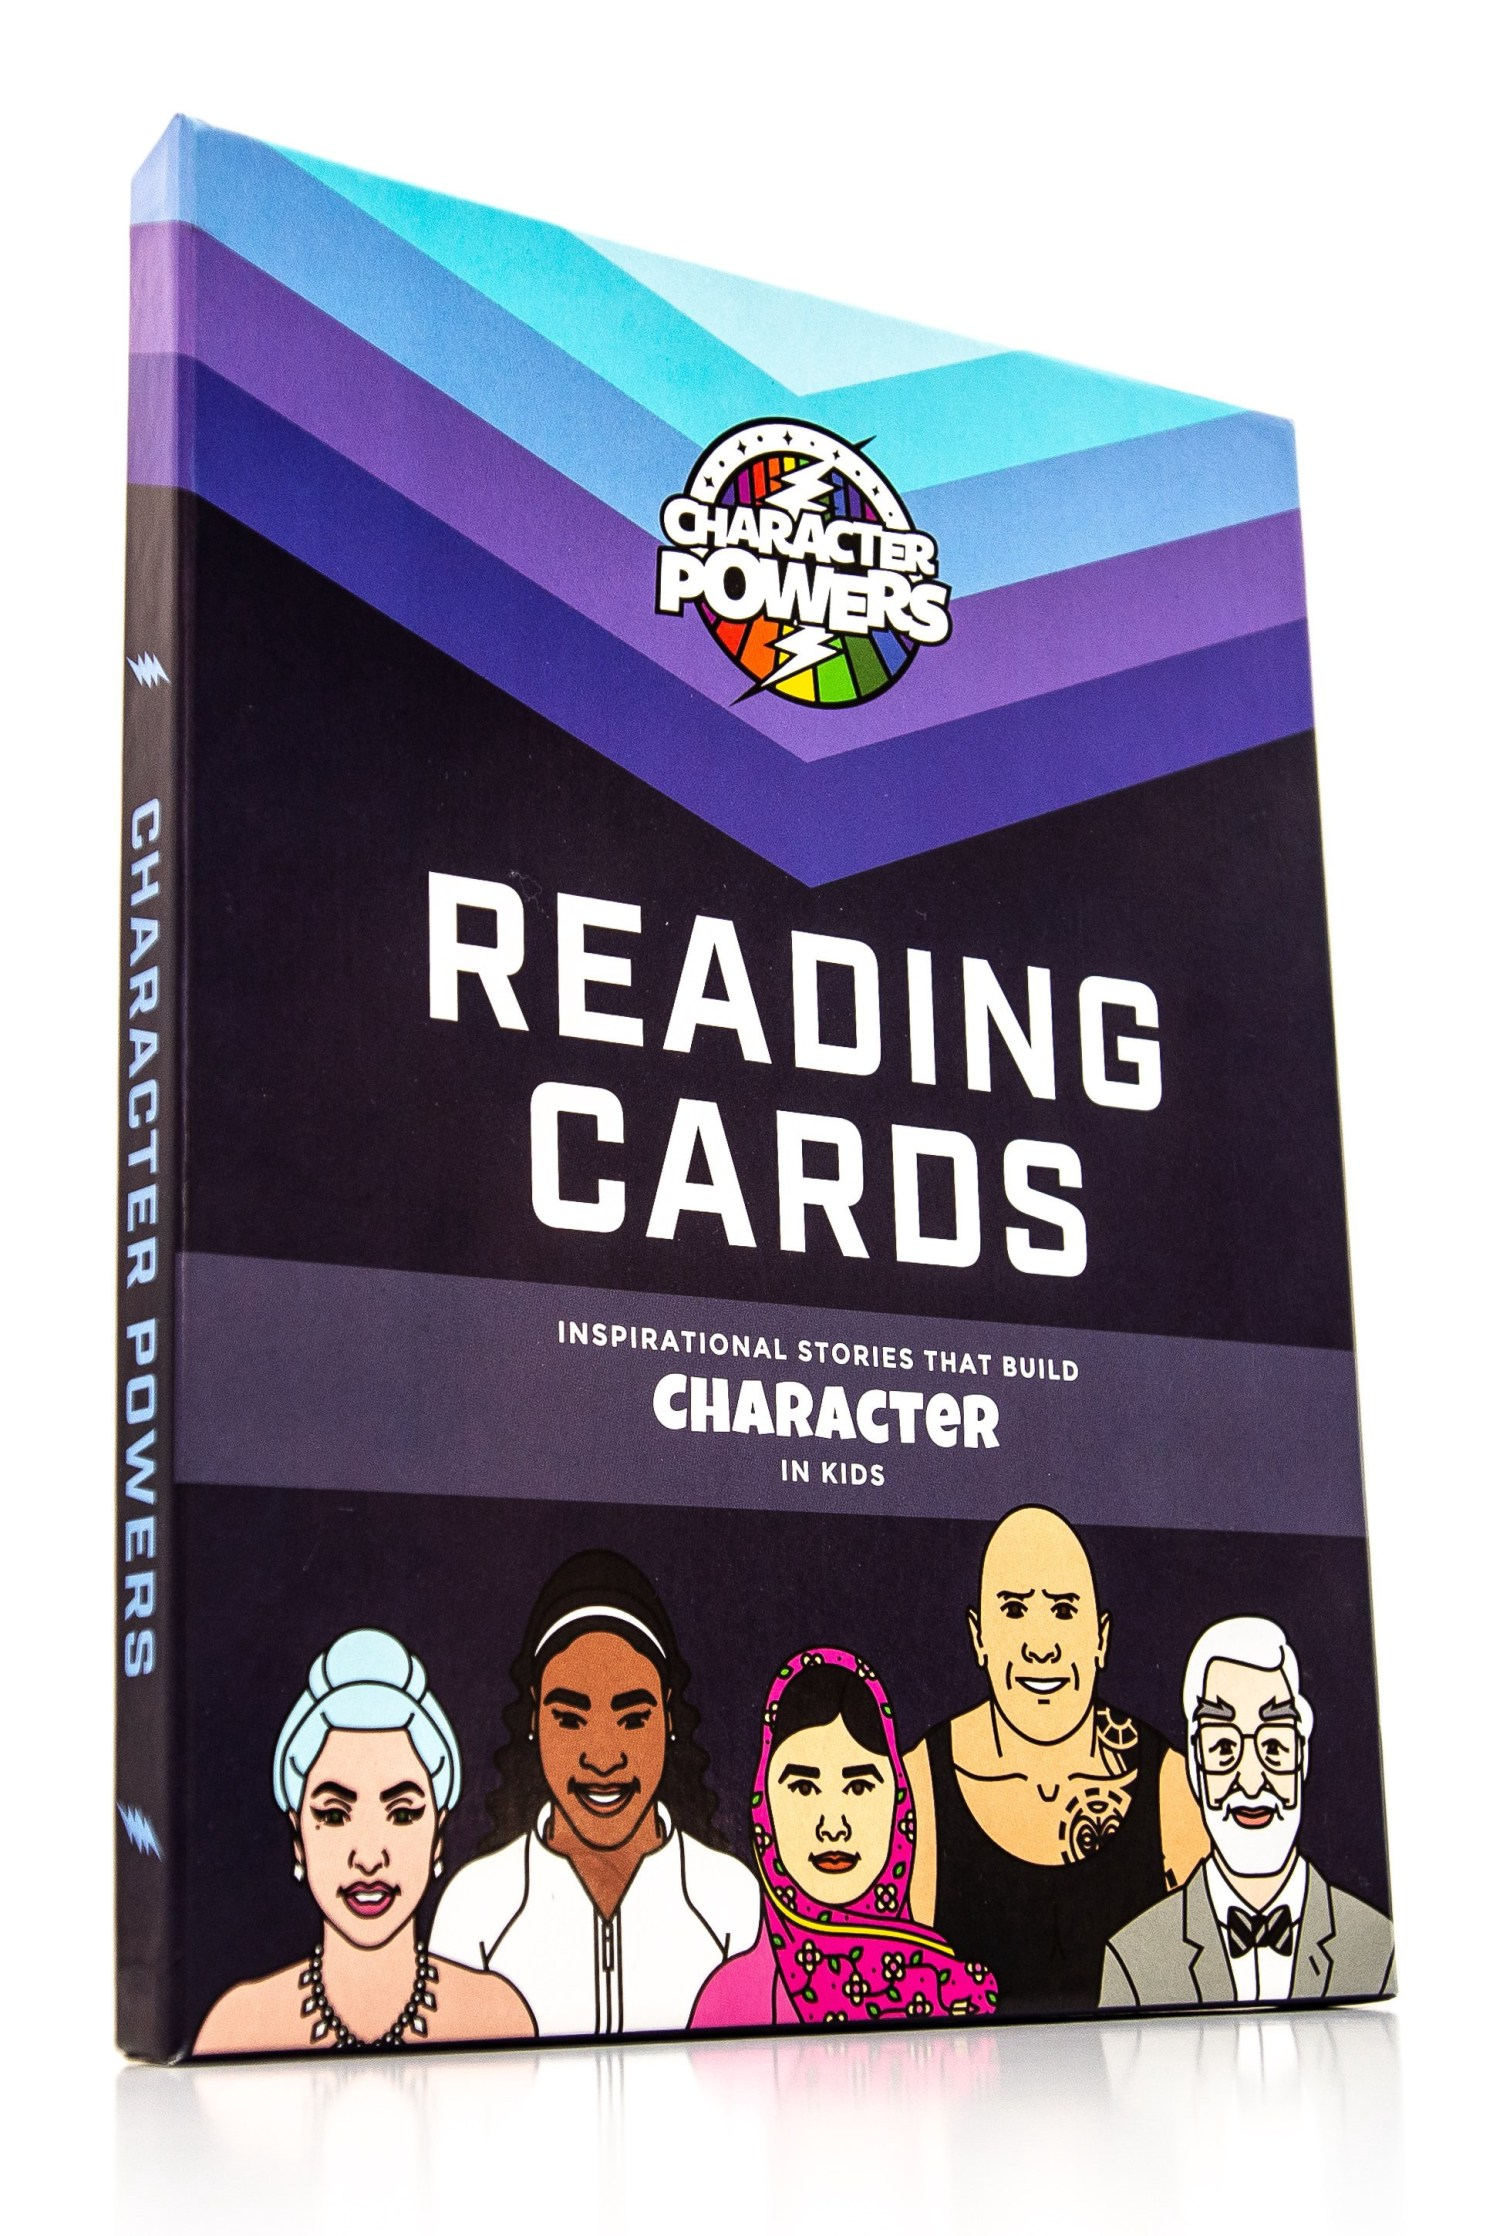 Character powers card game